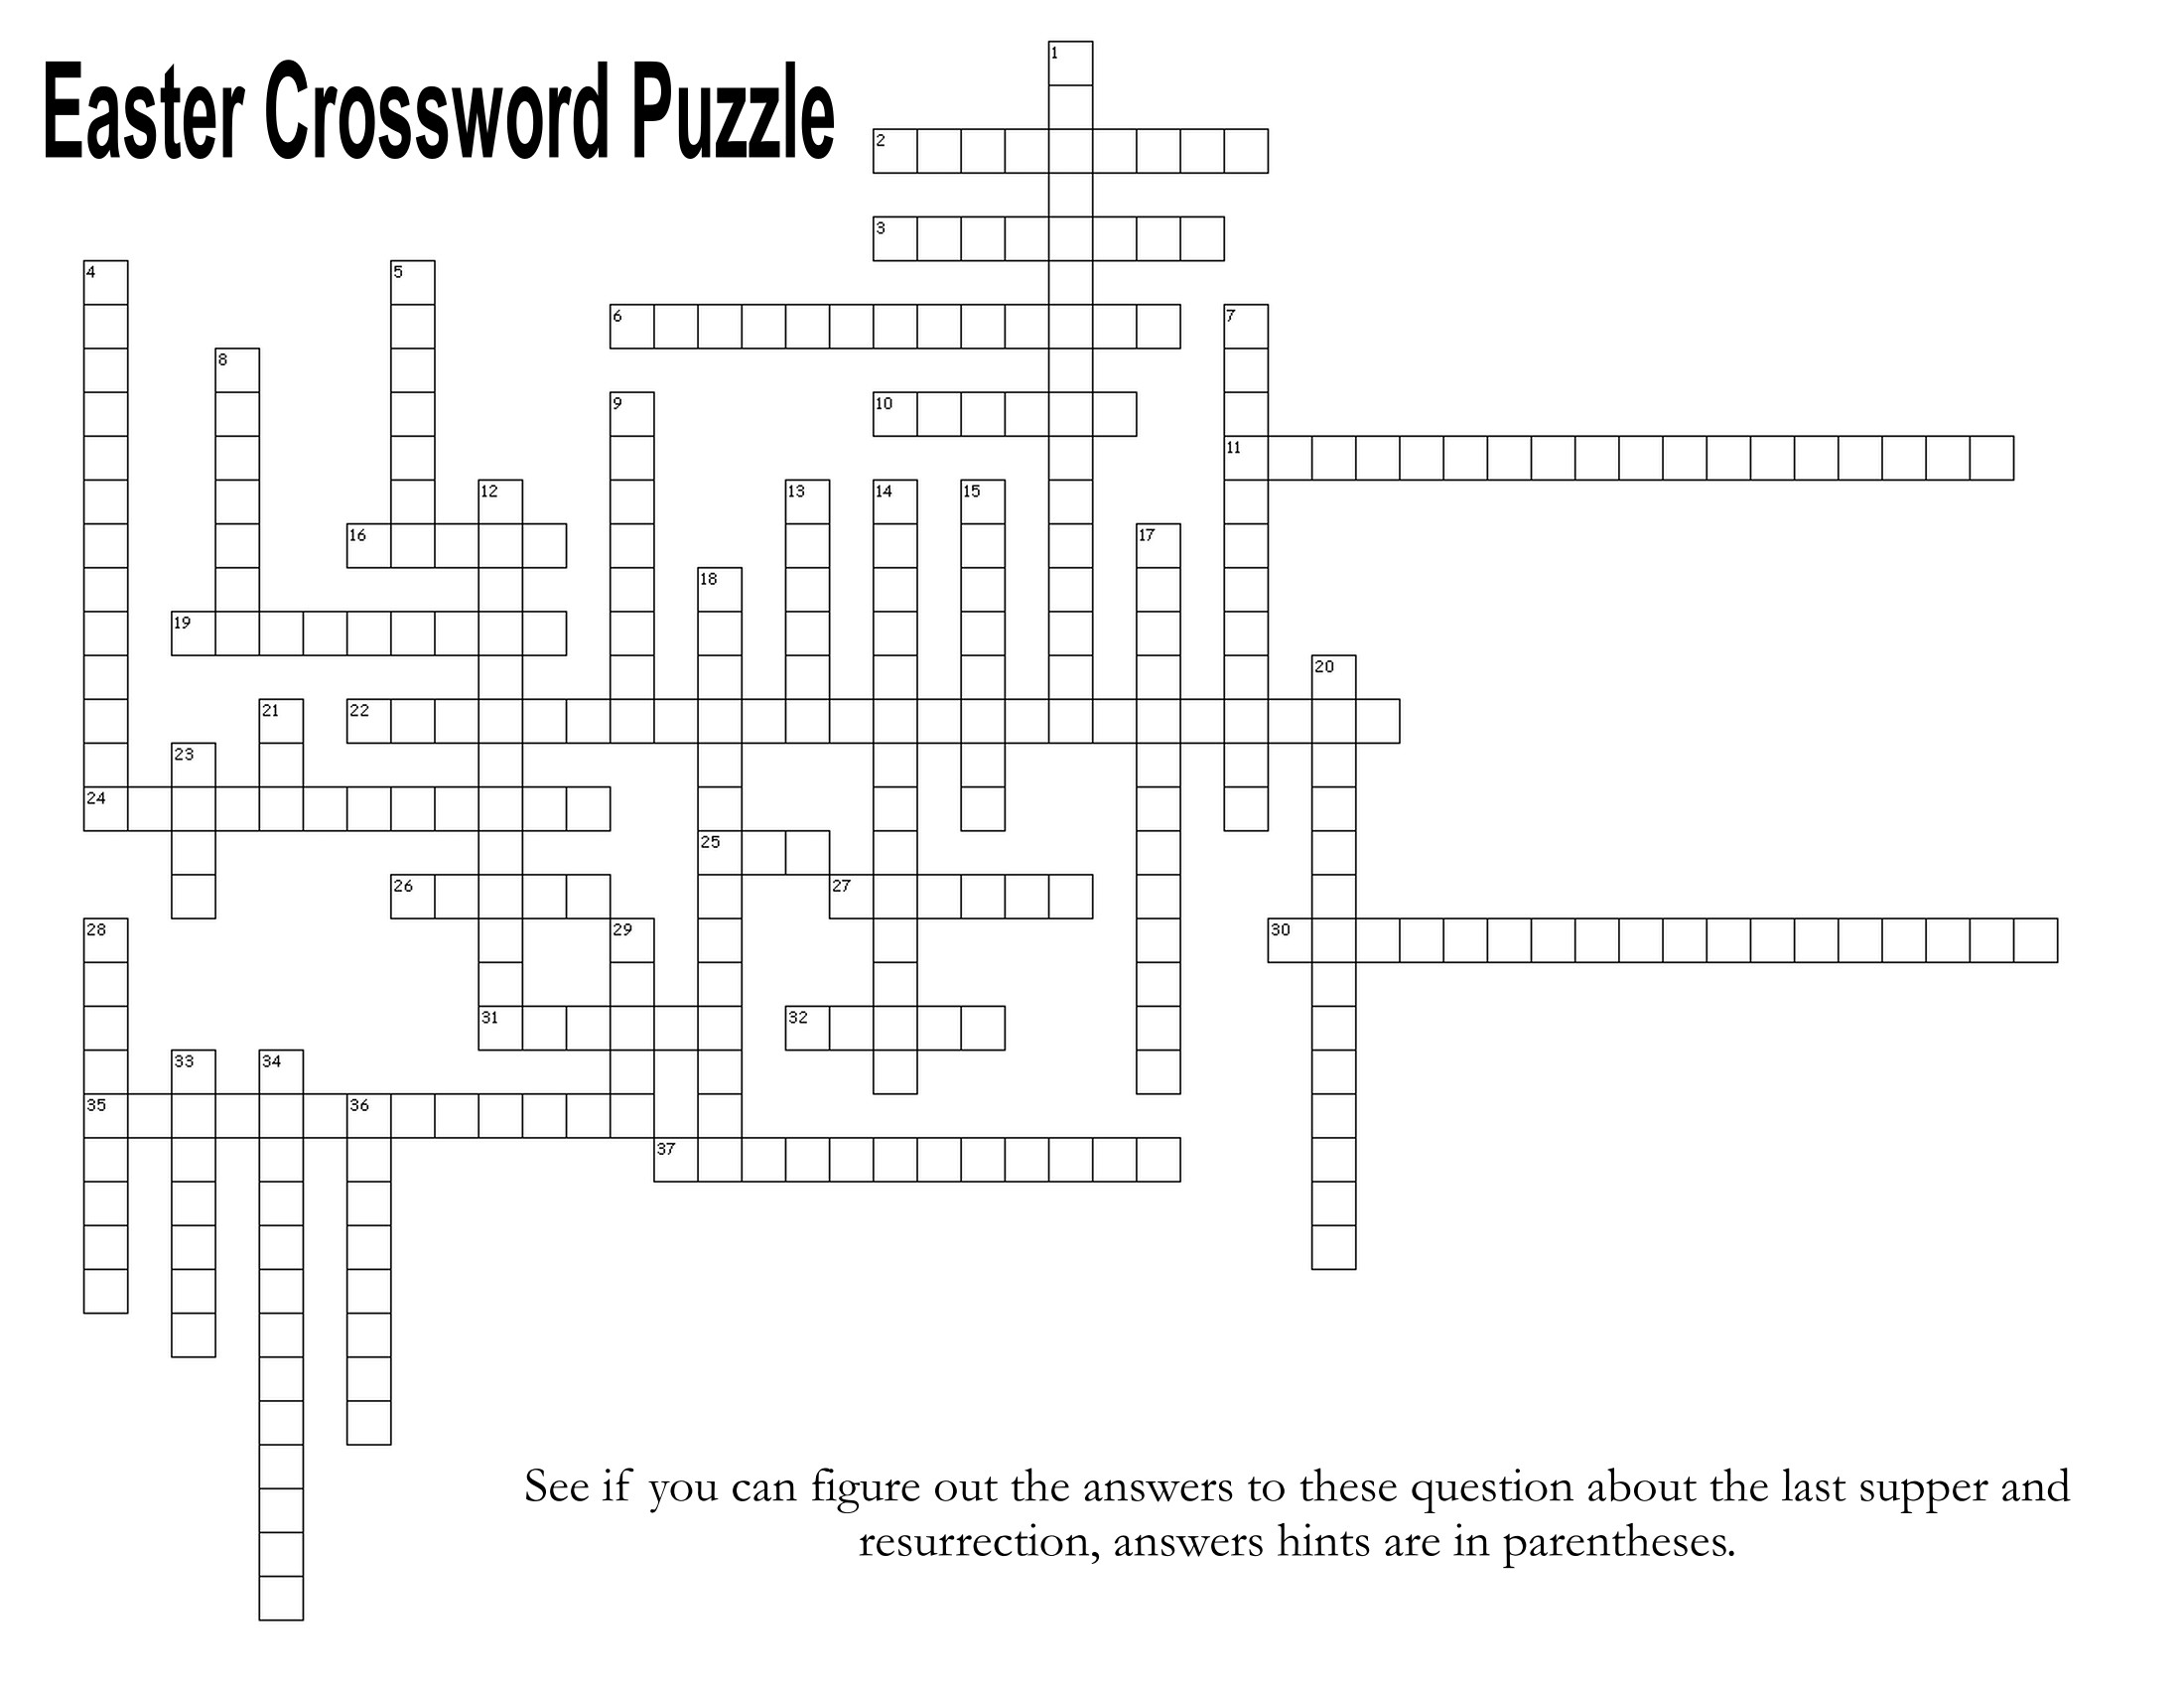 Last Supper And Resurrection Easter Crossword Puzzle